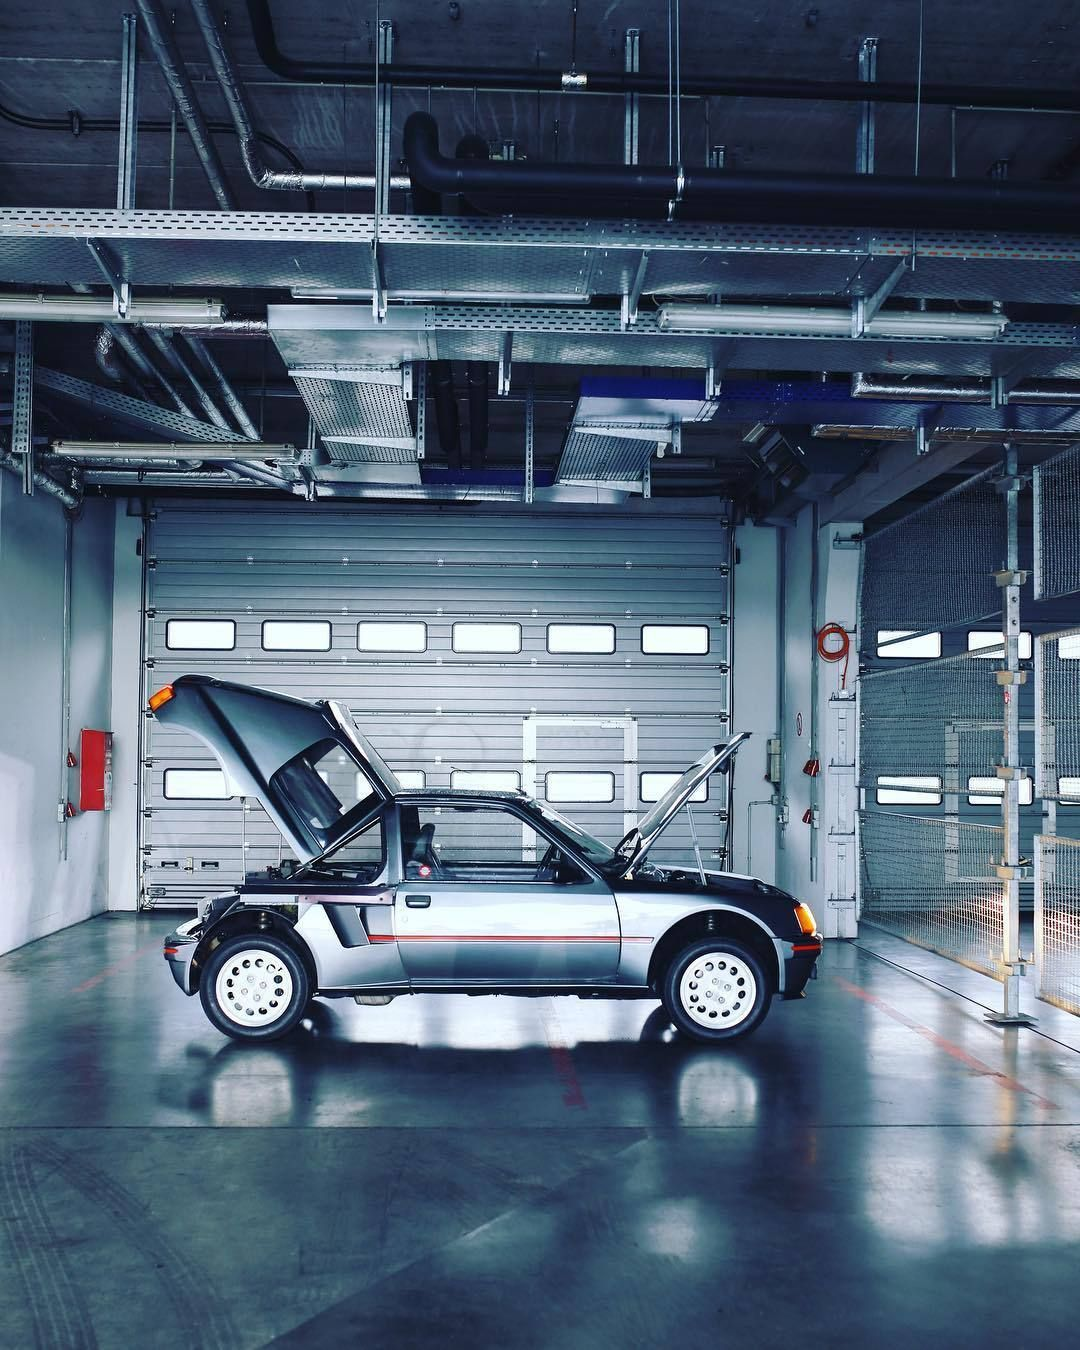 1984 1987 peugeot 205 t16 design by pininfarina photo by marcus kr ger robo toys. Black Bedroom Furniture Sets. Home Design Ideas